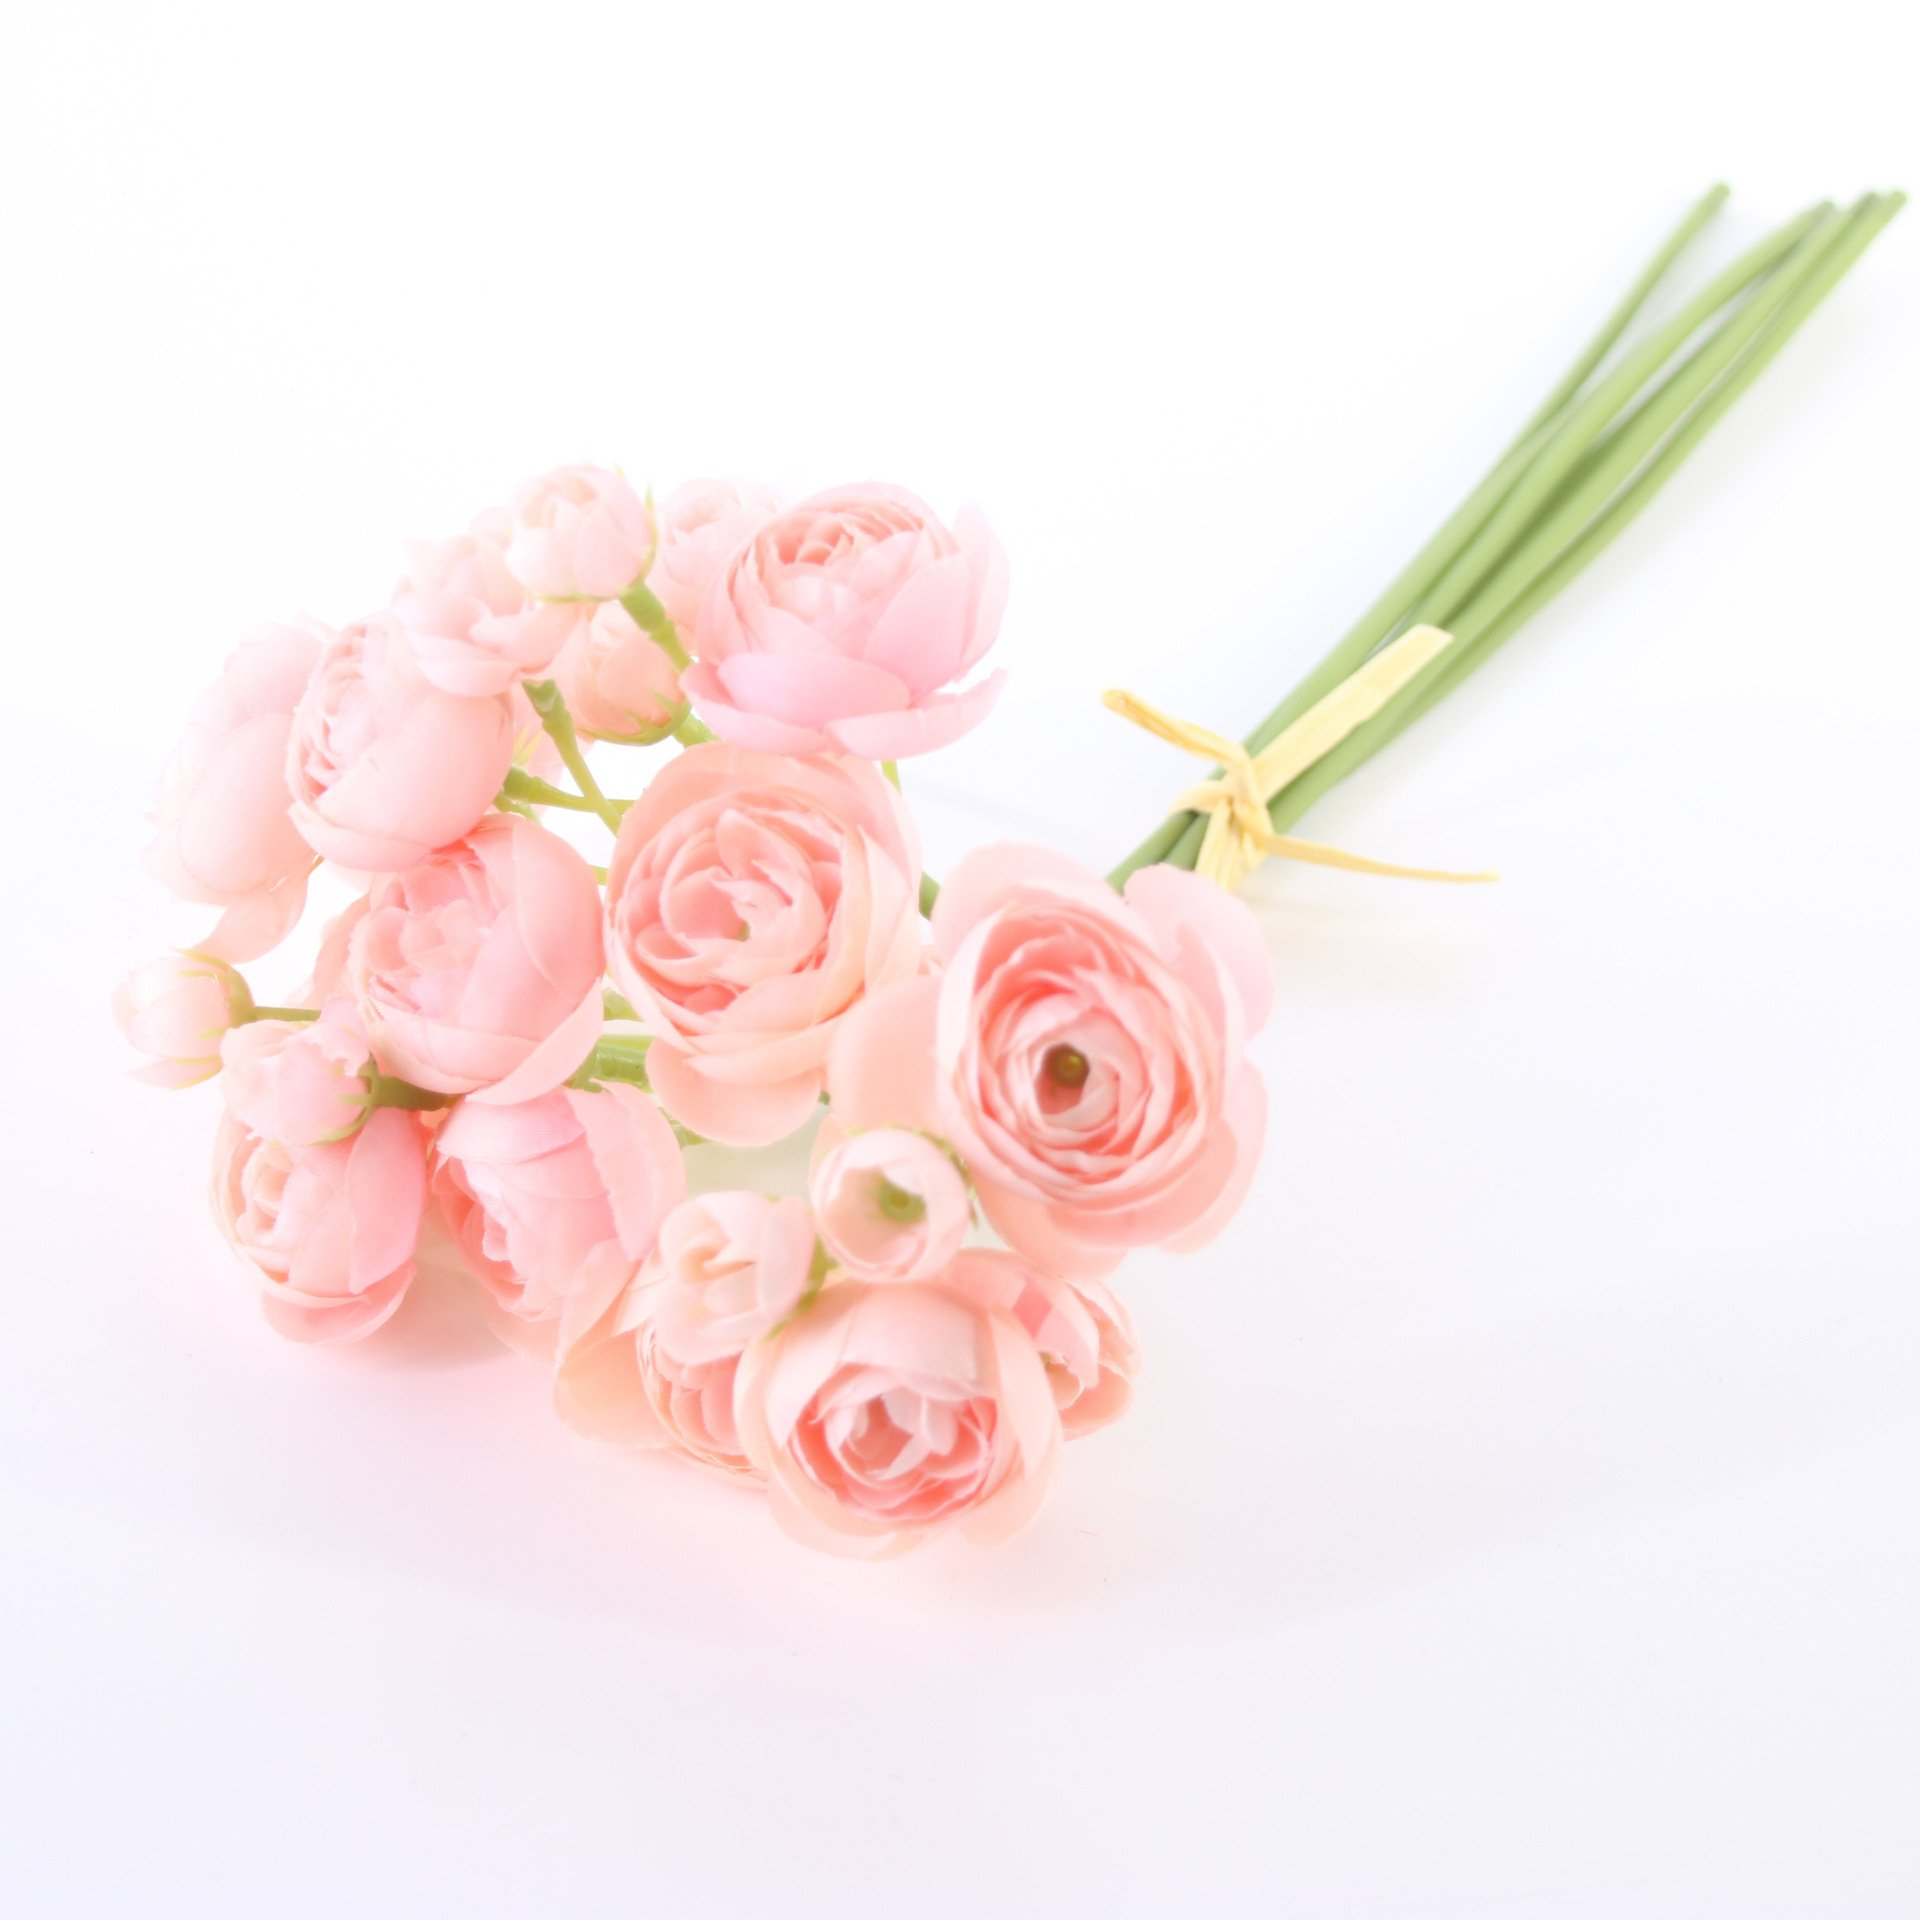 Movie And Tv Props Bunch Of Small Camellia 6 Camellia Lotus Wedding Home Movie And Tv Light Pink